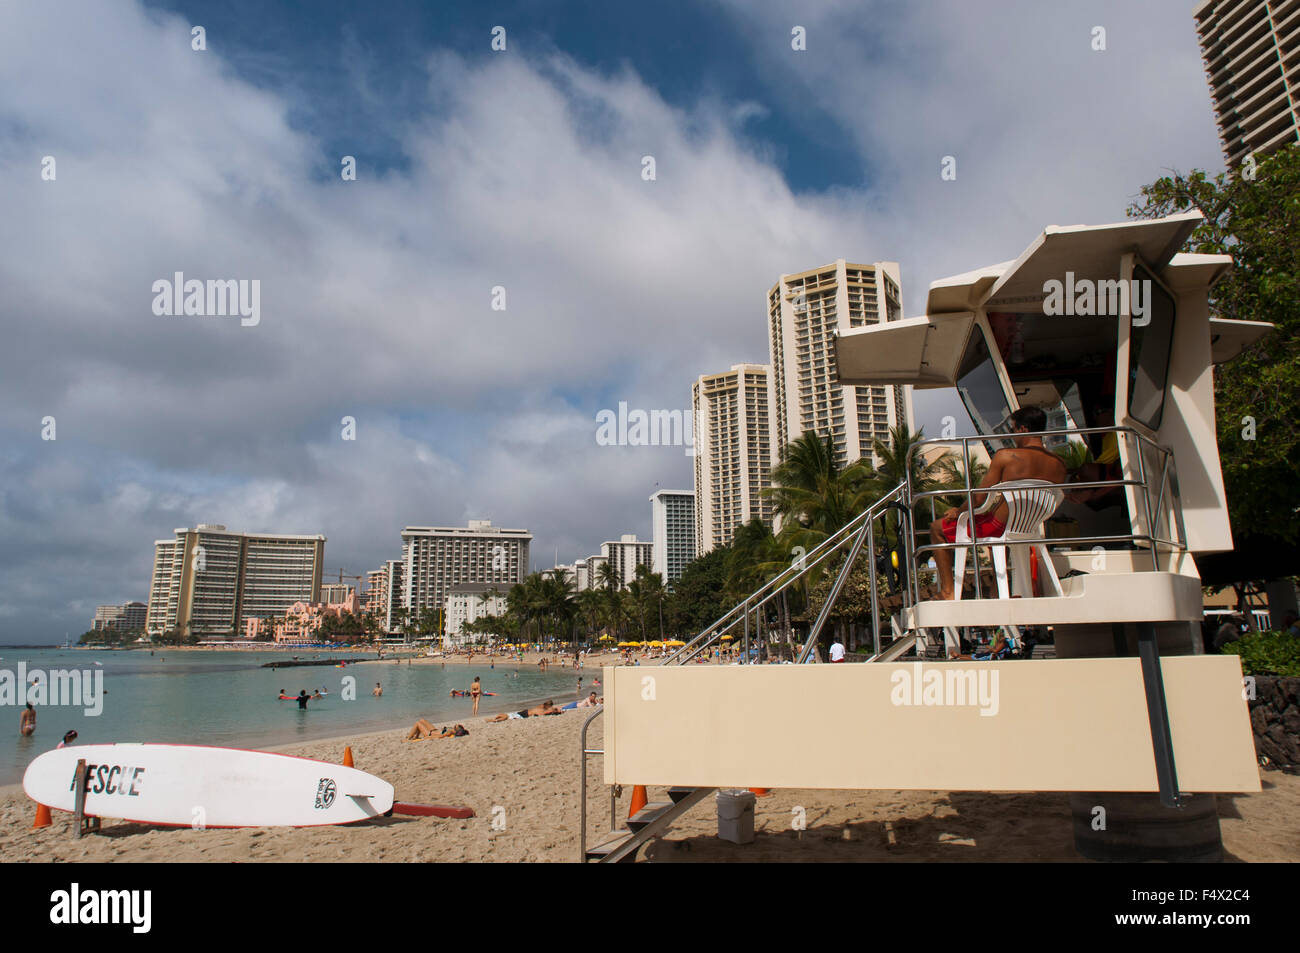 Life guard at Beach of Waikiki Beach. O'ahu. Hawaii. Waikiki is most famous for its beaches and every room is - Stock Image